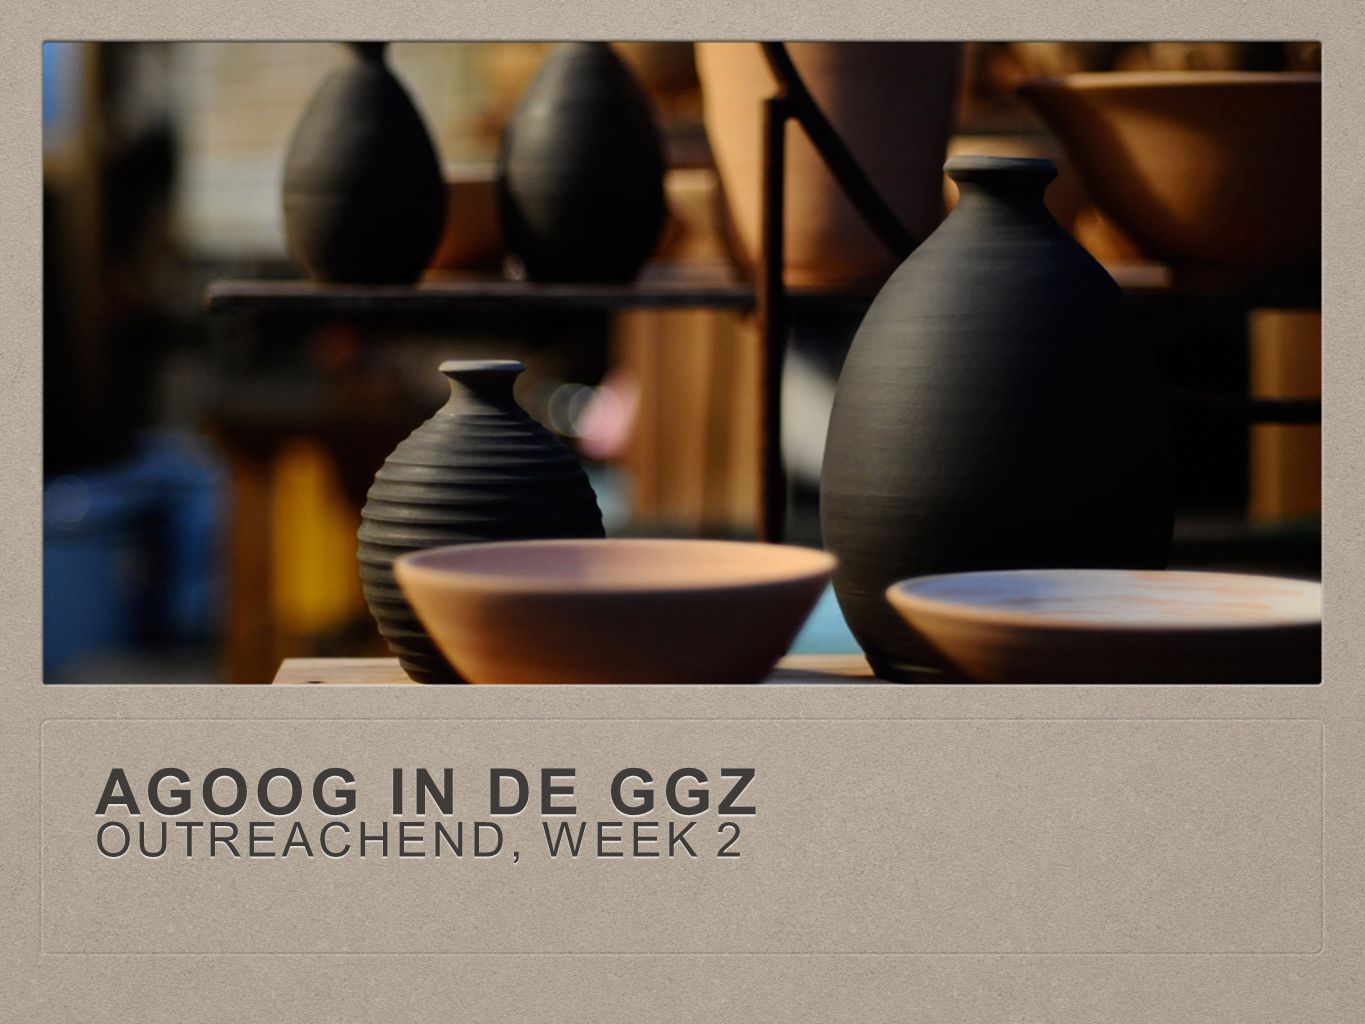 Agoog in de GGZ outreachend, week 2